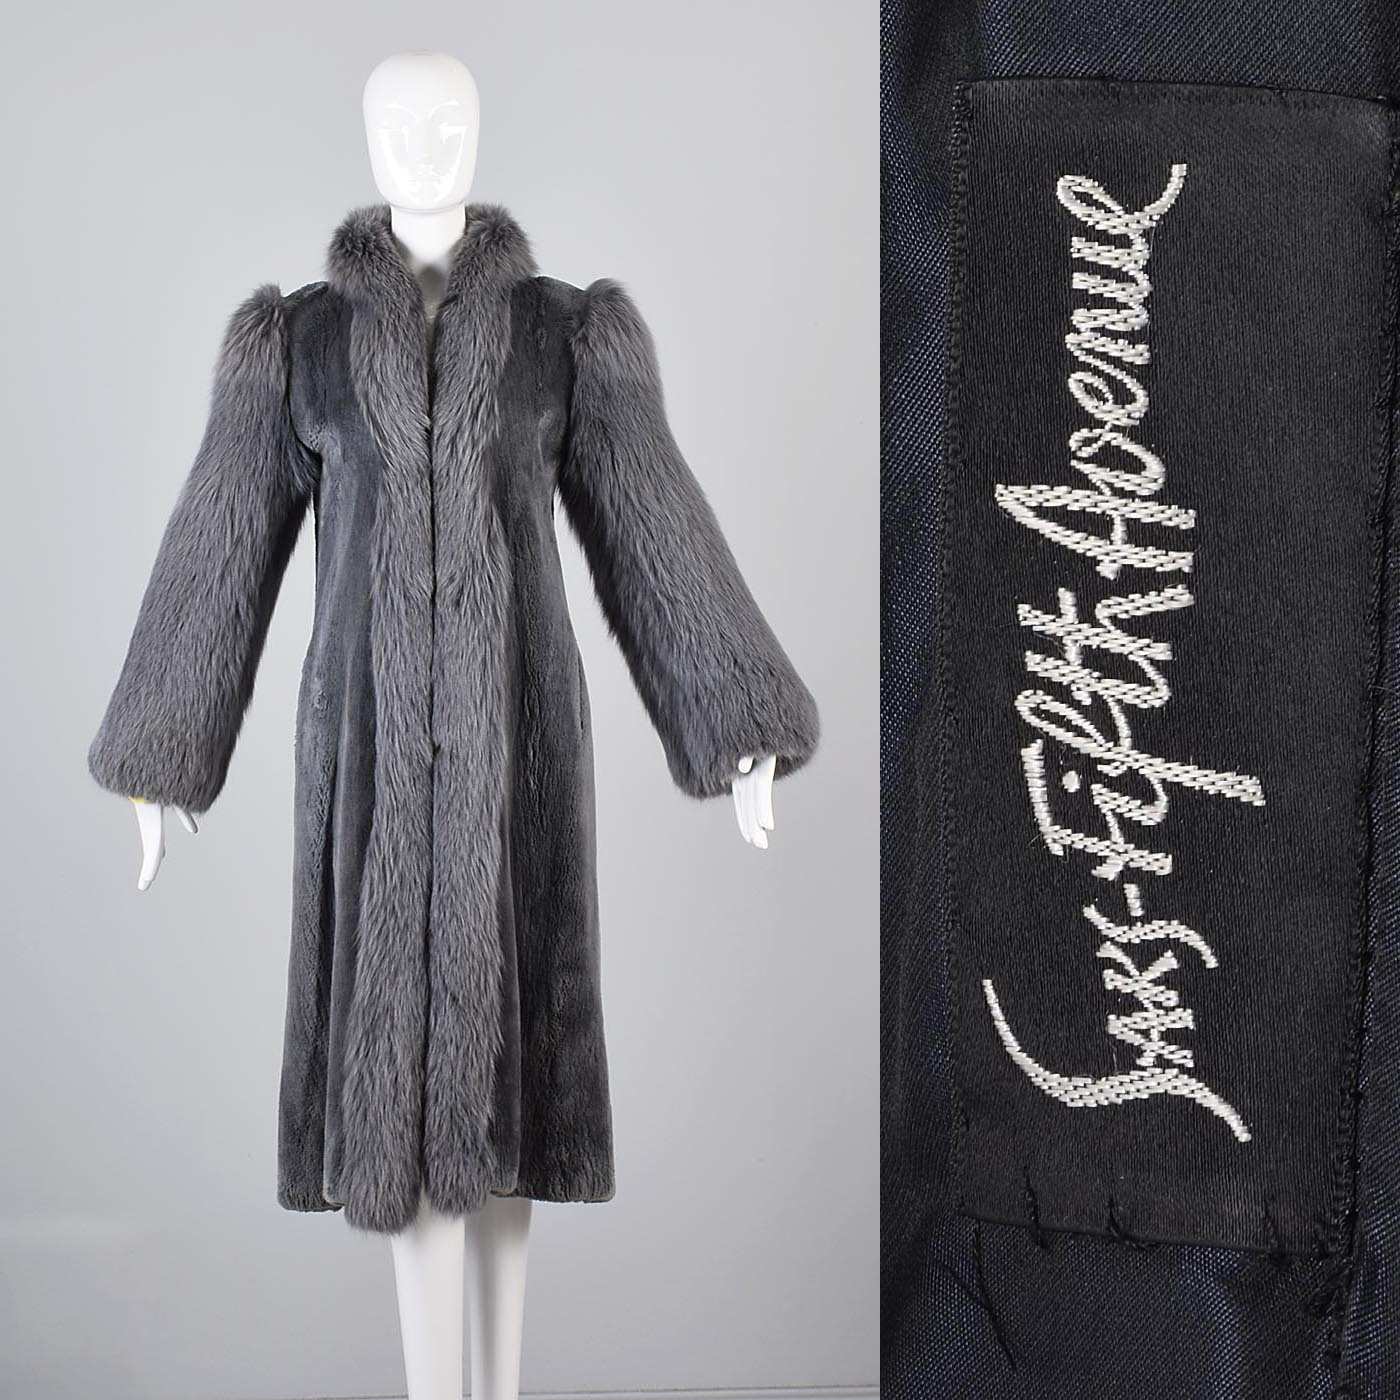 Saks Fifth Avenue Revillon Full Length Sheared Beaver Coat with Fox Fur Tuxedo